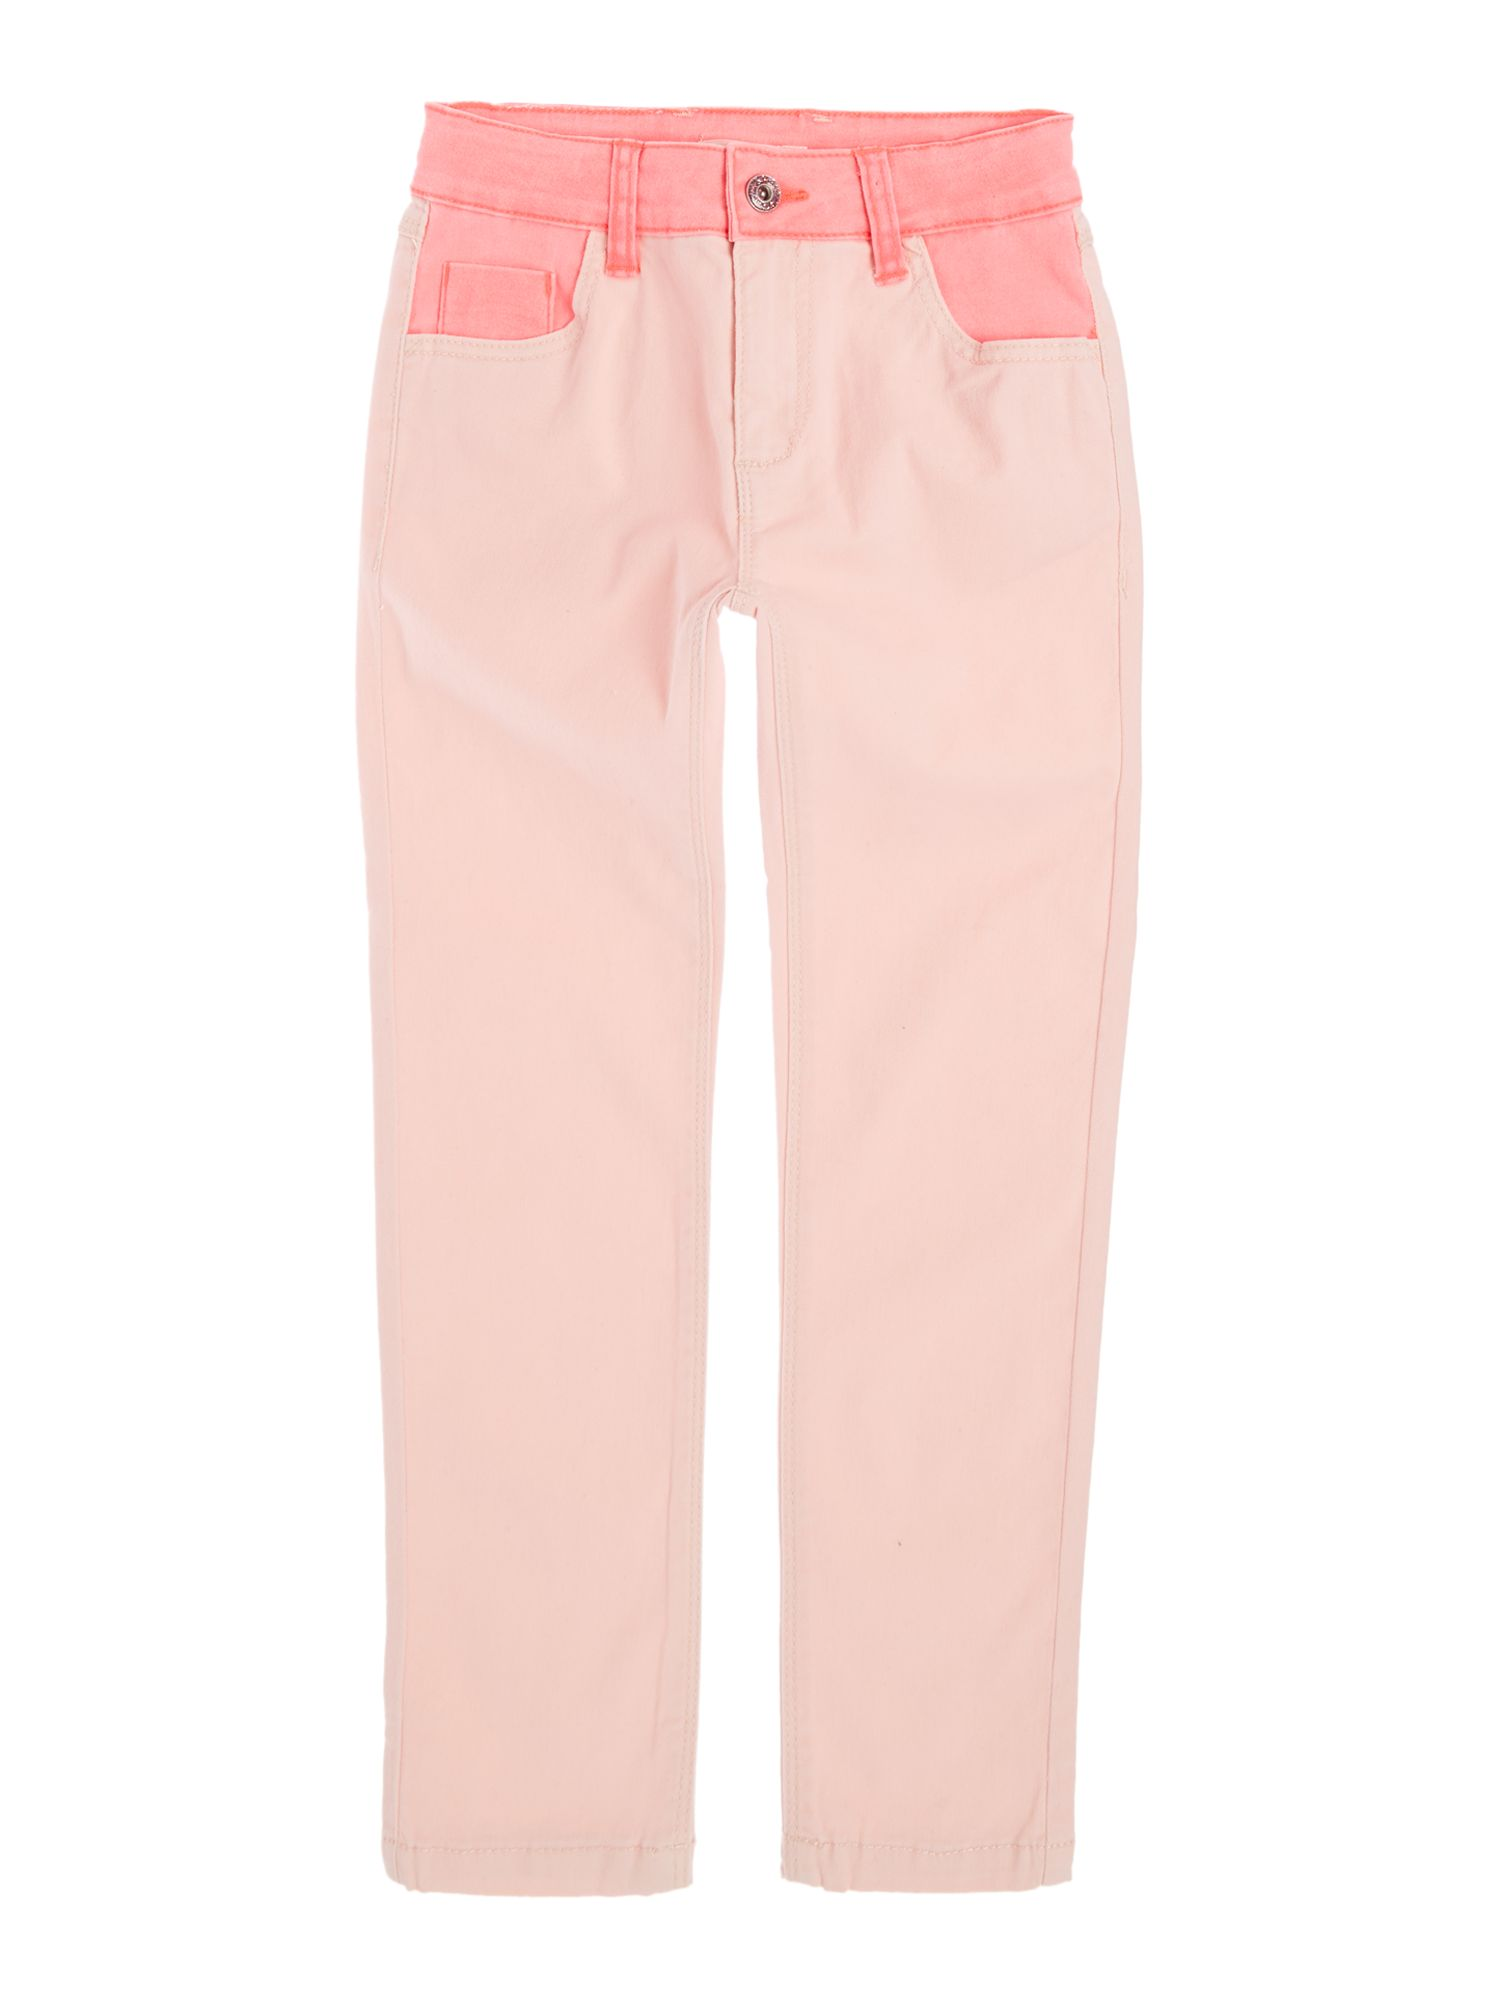 Billieblush Billieblush Girls Bow Trousers, Pink